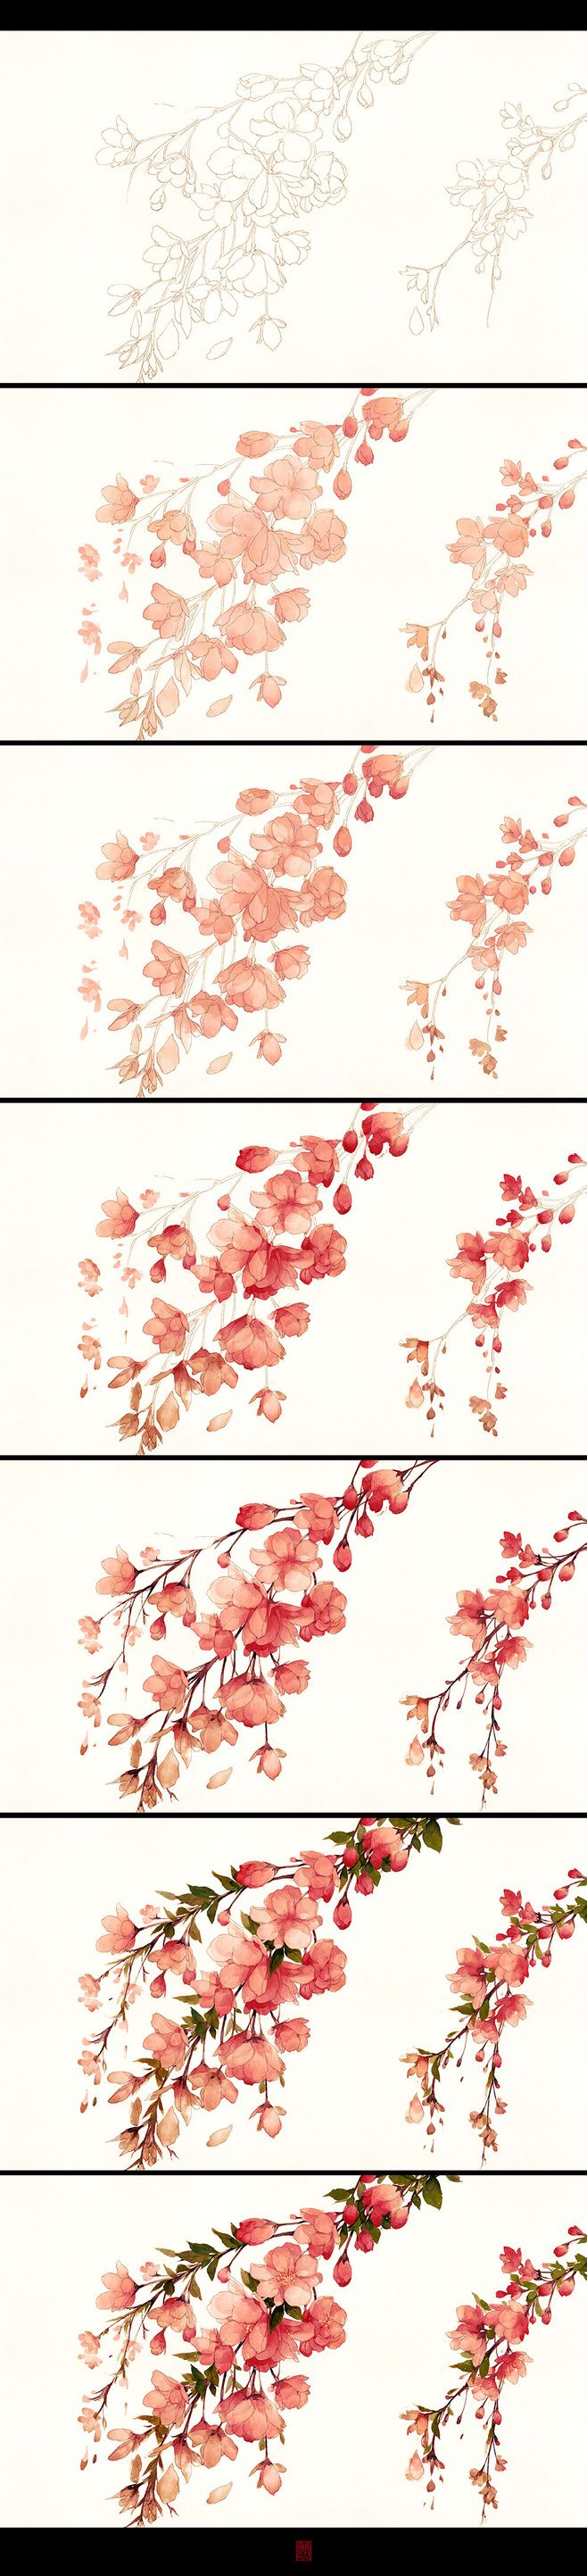 watercolor floral technique